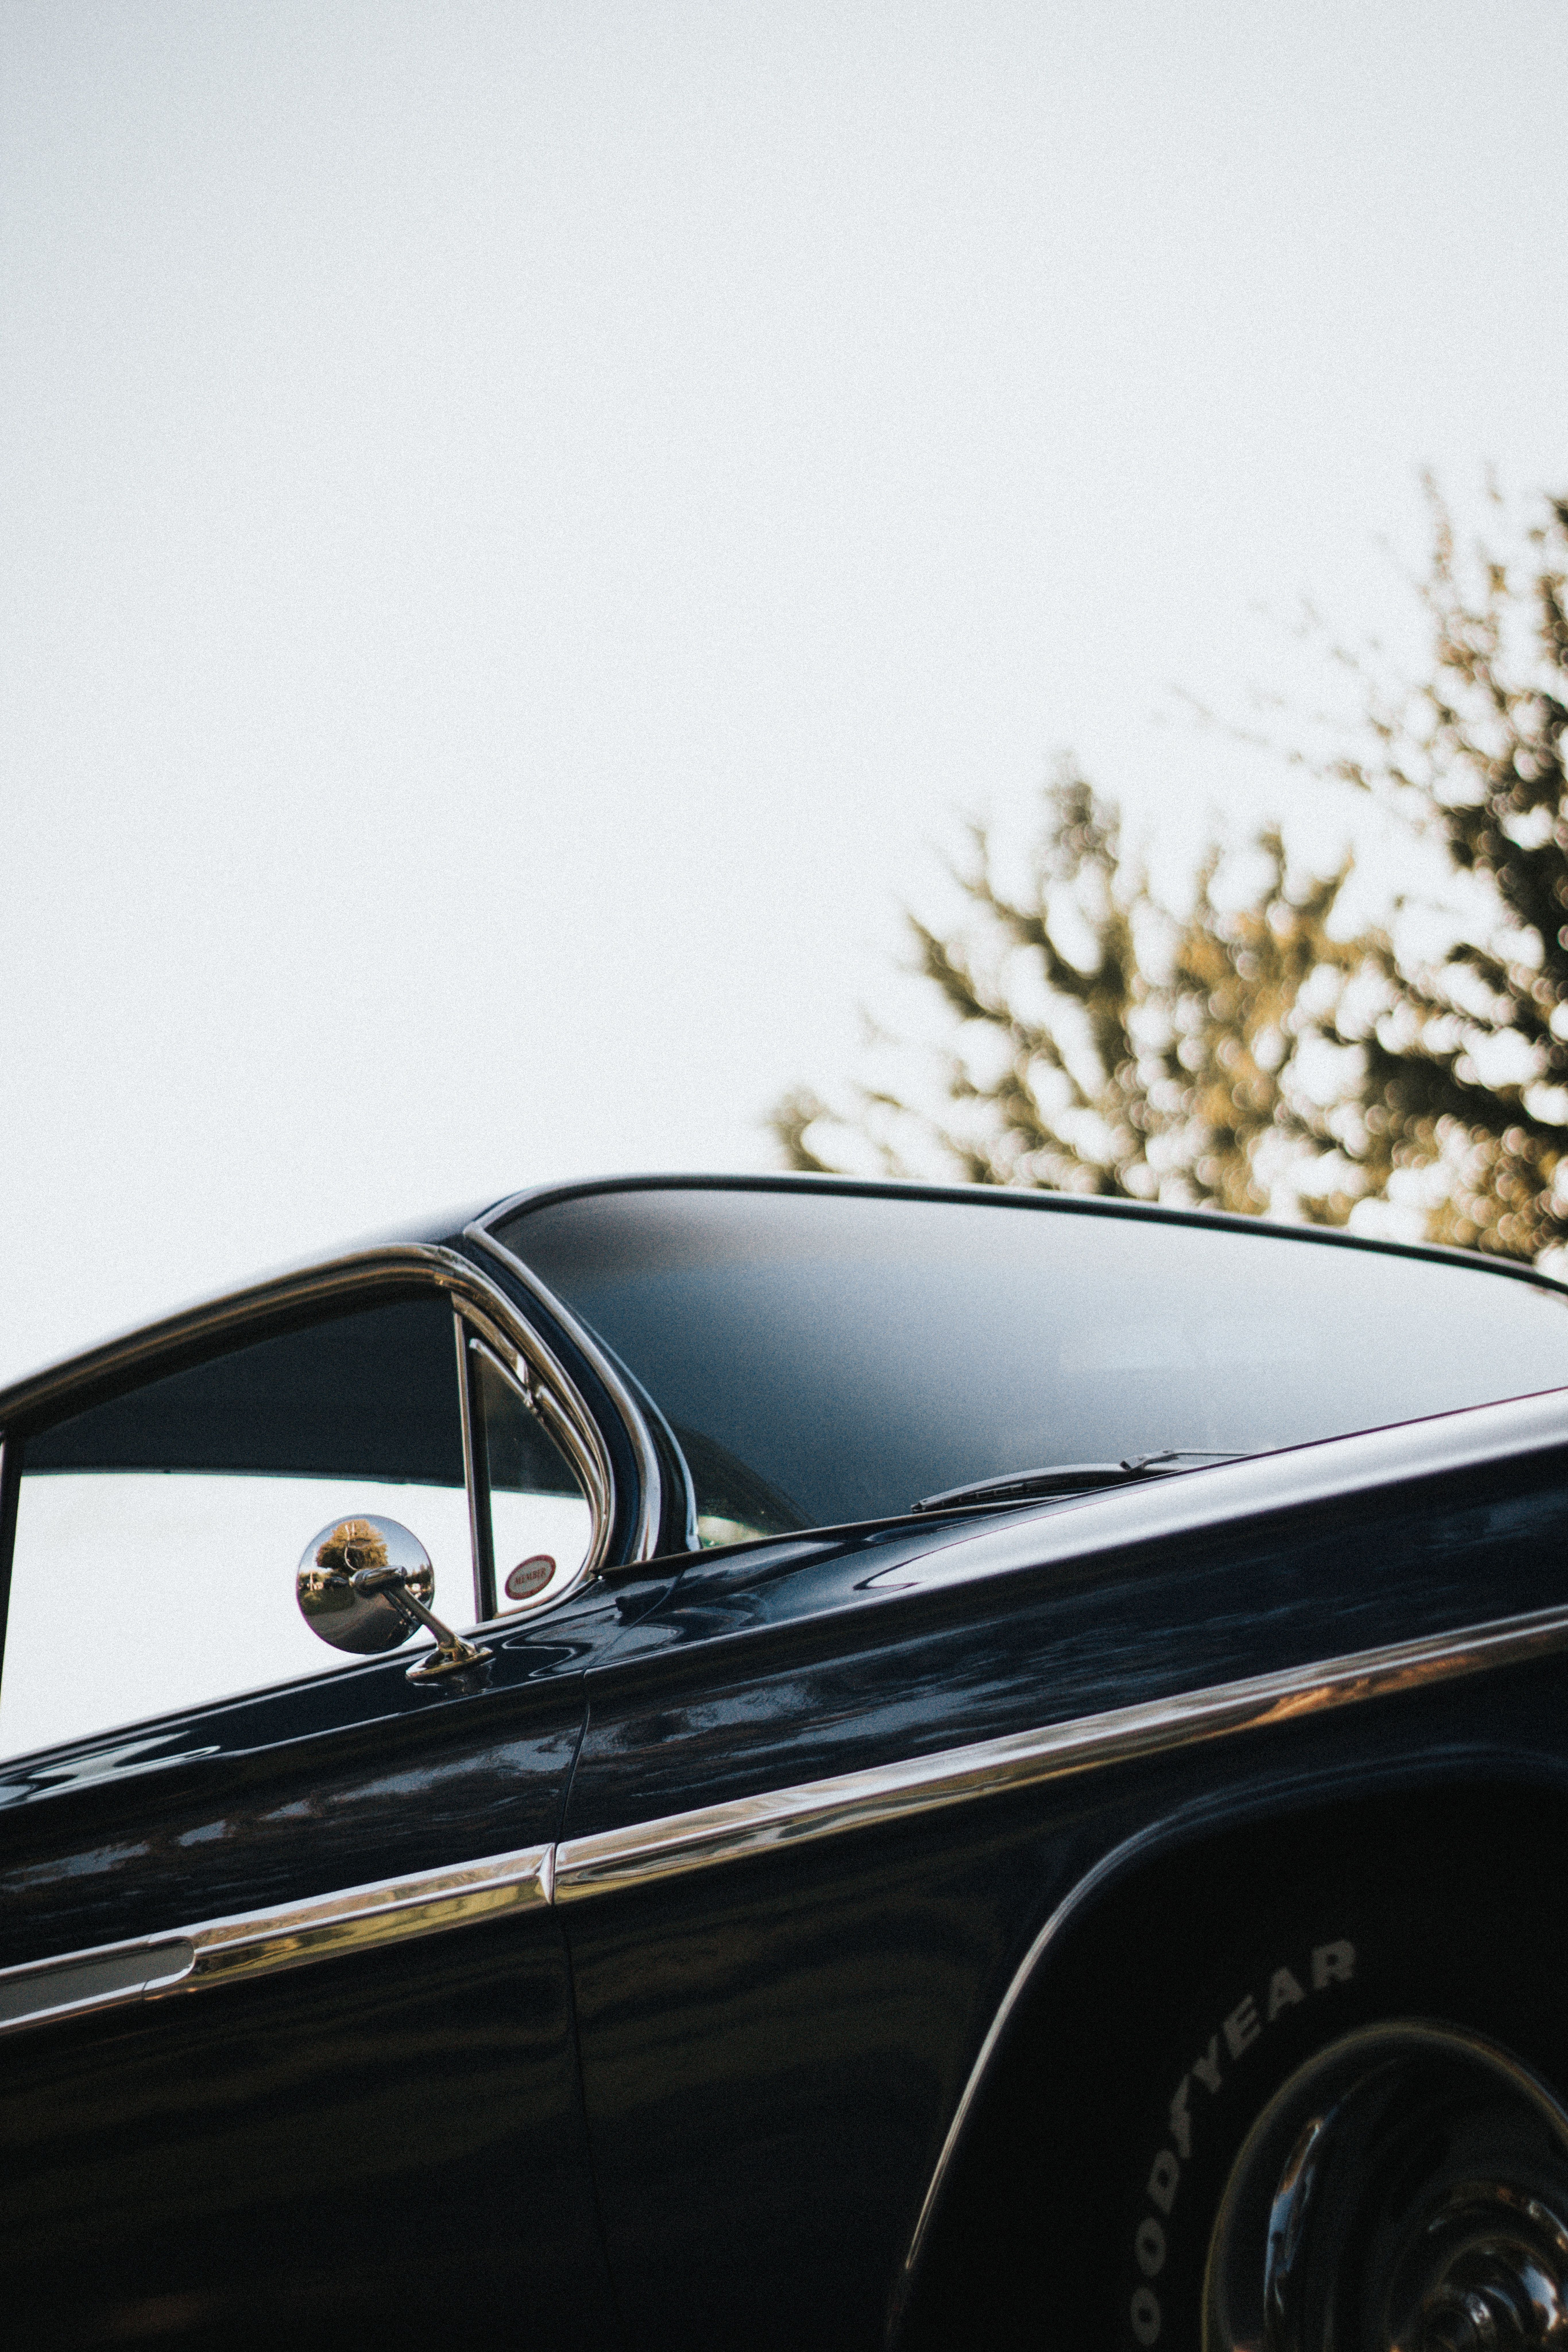 A Low Angle Shot Of A Black Vintage Car In 2020 Car Photography Iphone Wallpaper Vintage Car Wallpapers